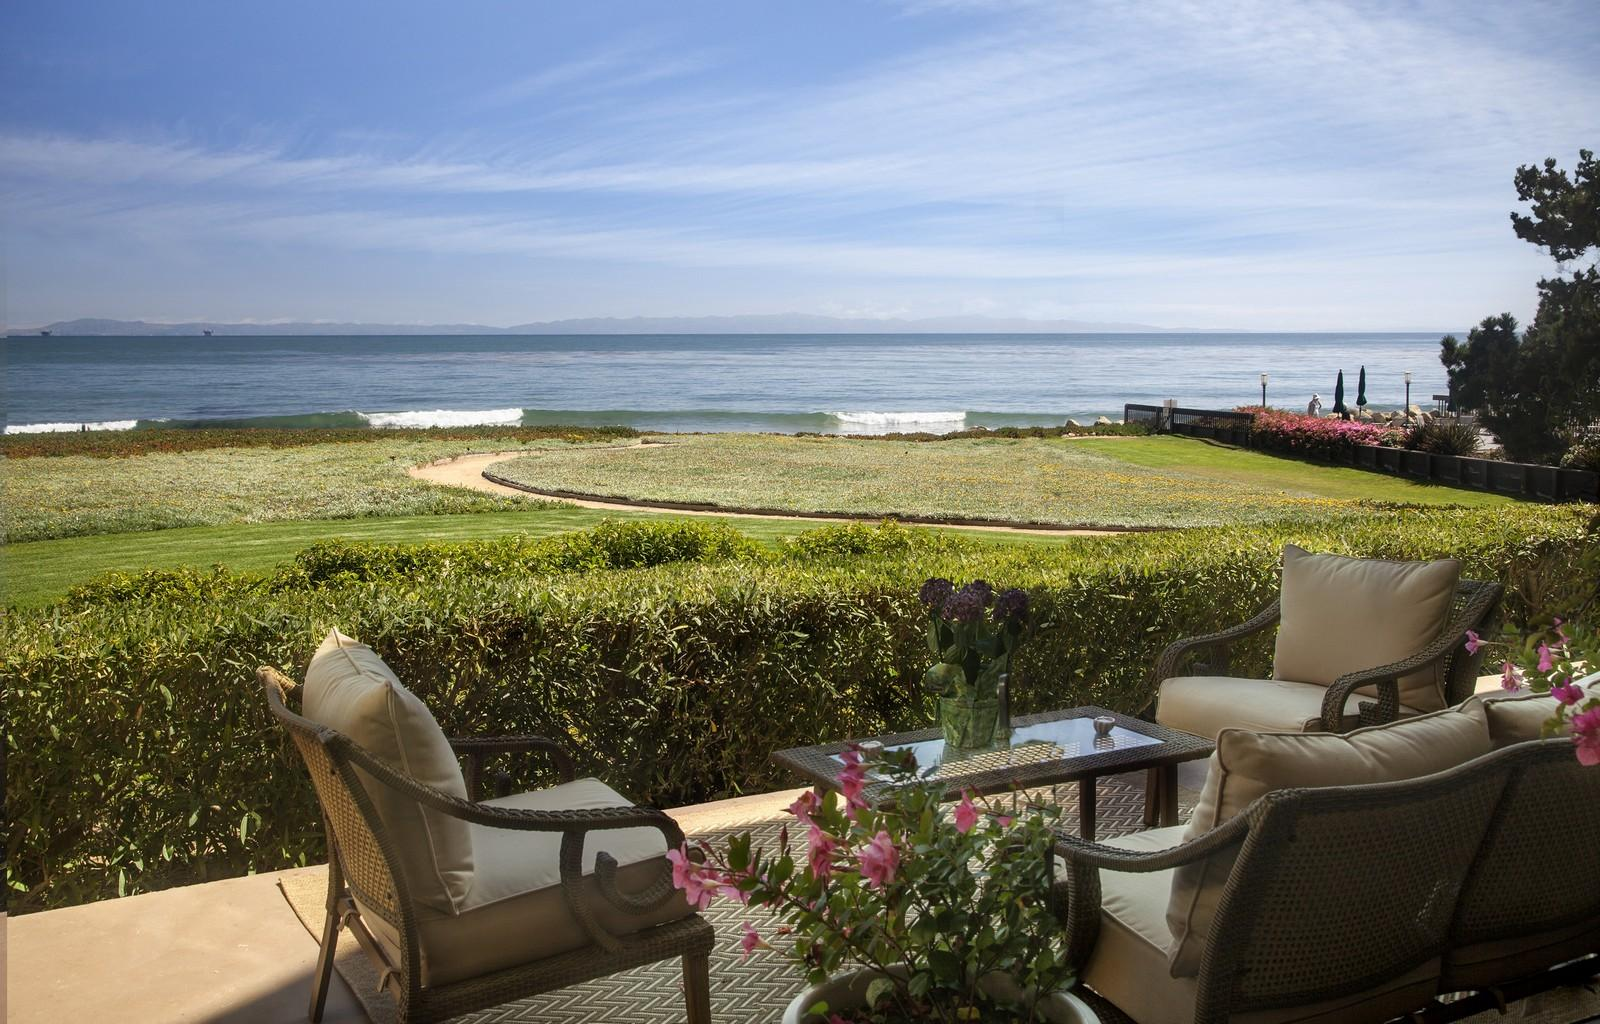 Property photo for 1 Seaview Dr Santa Barbara, California 93108 - 13-2250